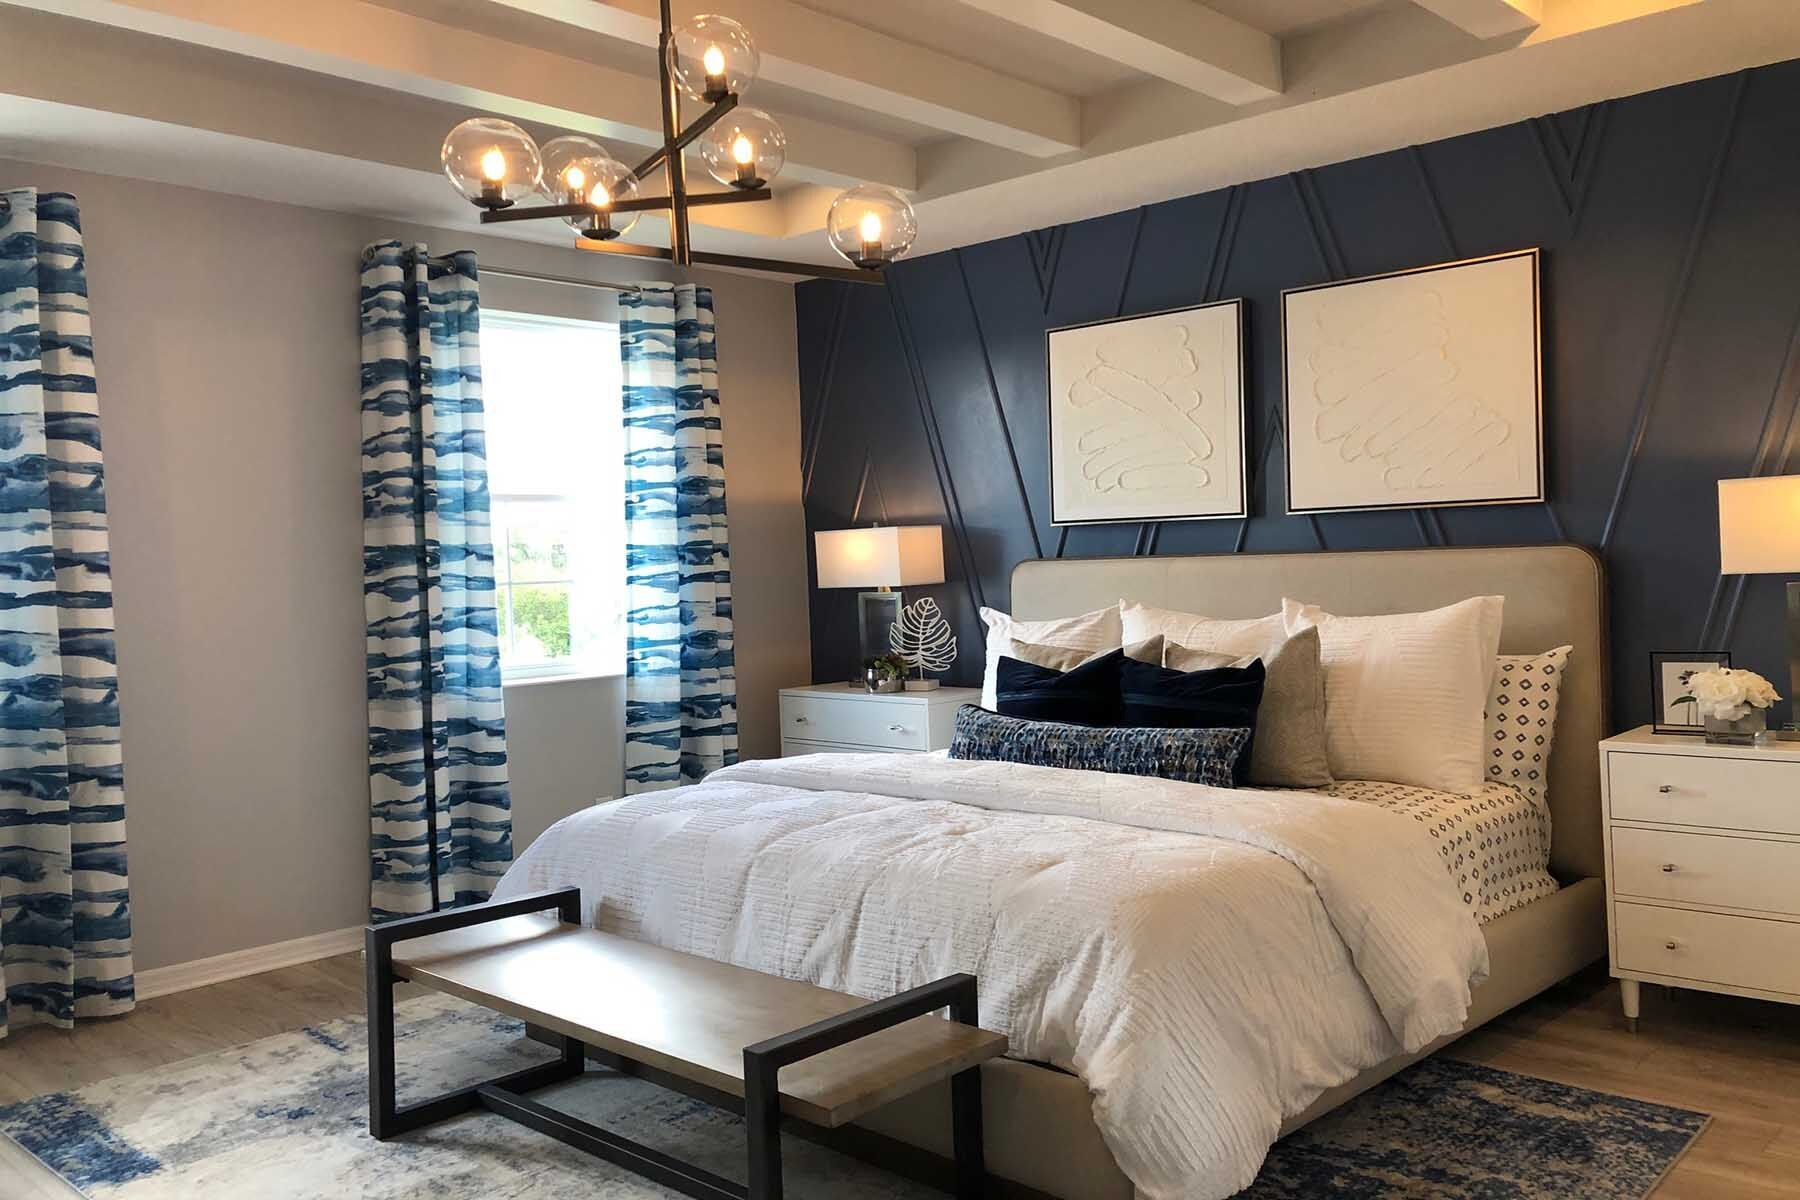 Bedroom featured in the Sebring By M/I Homes in Orlando, FL